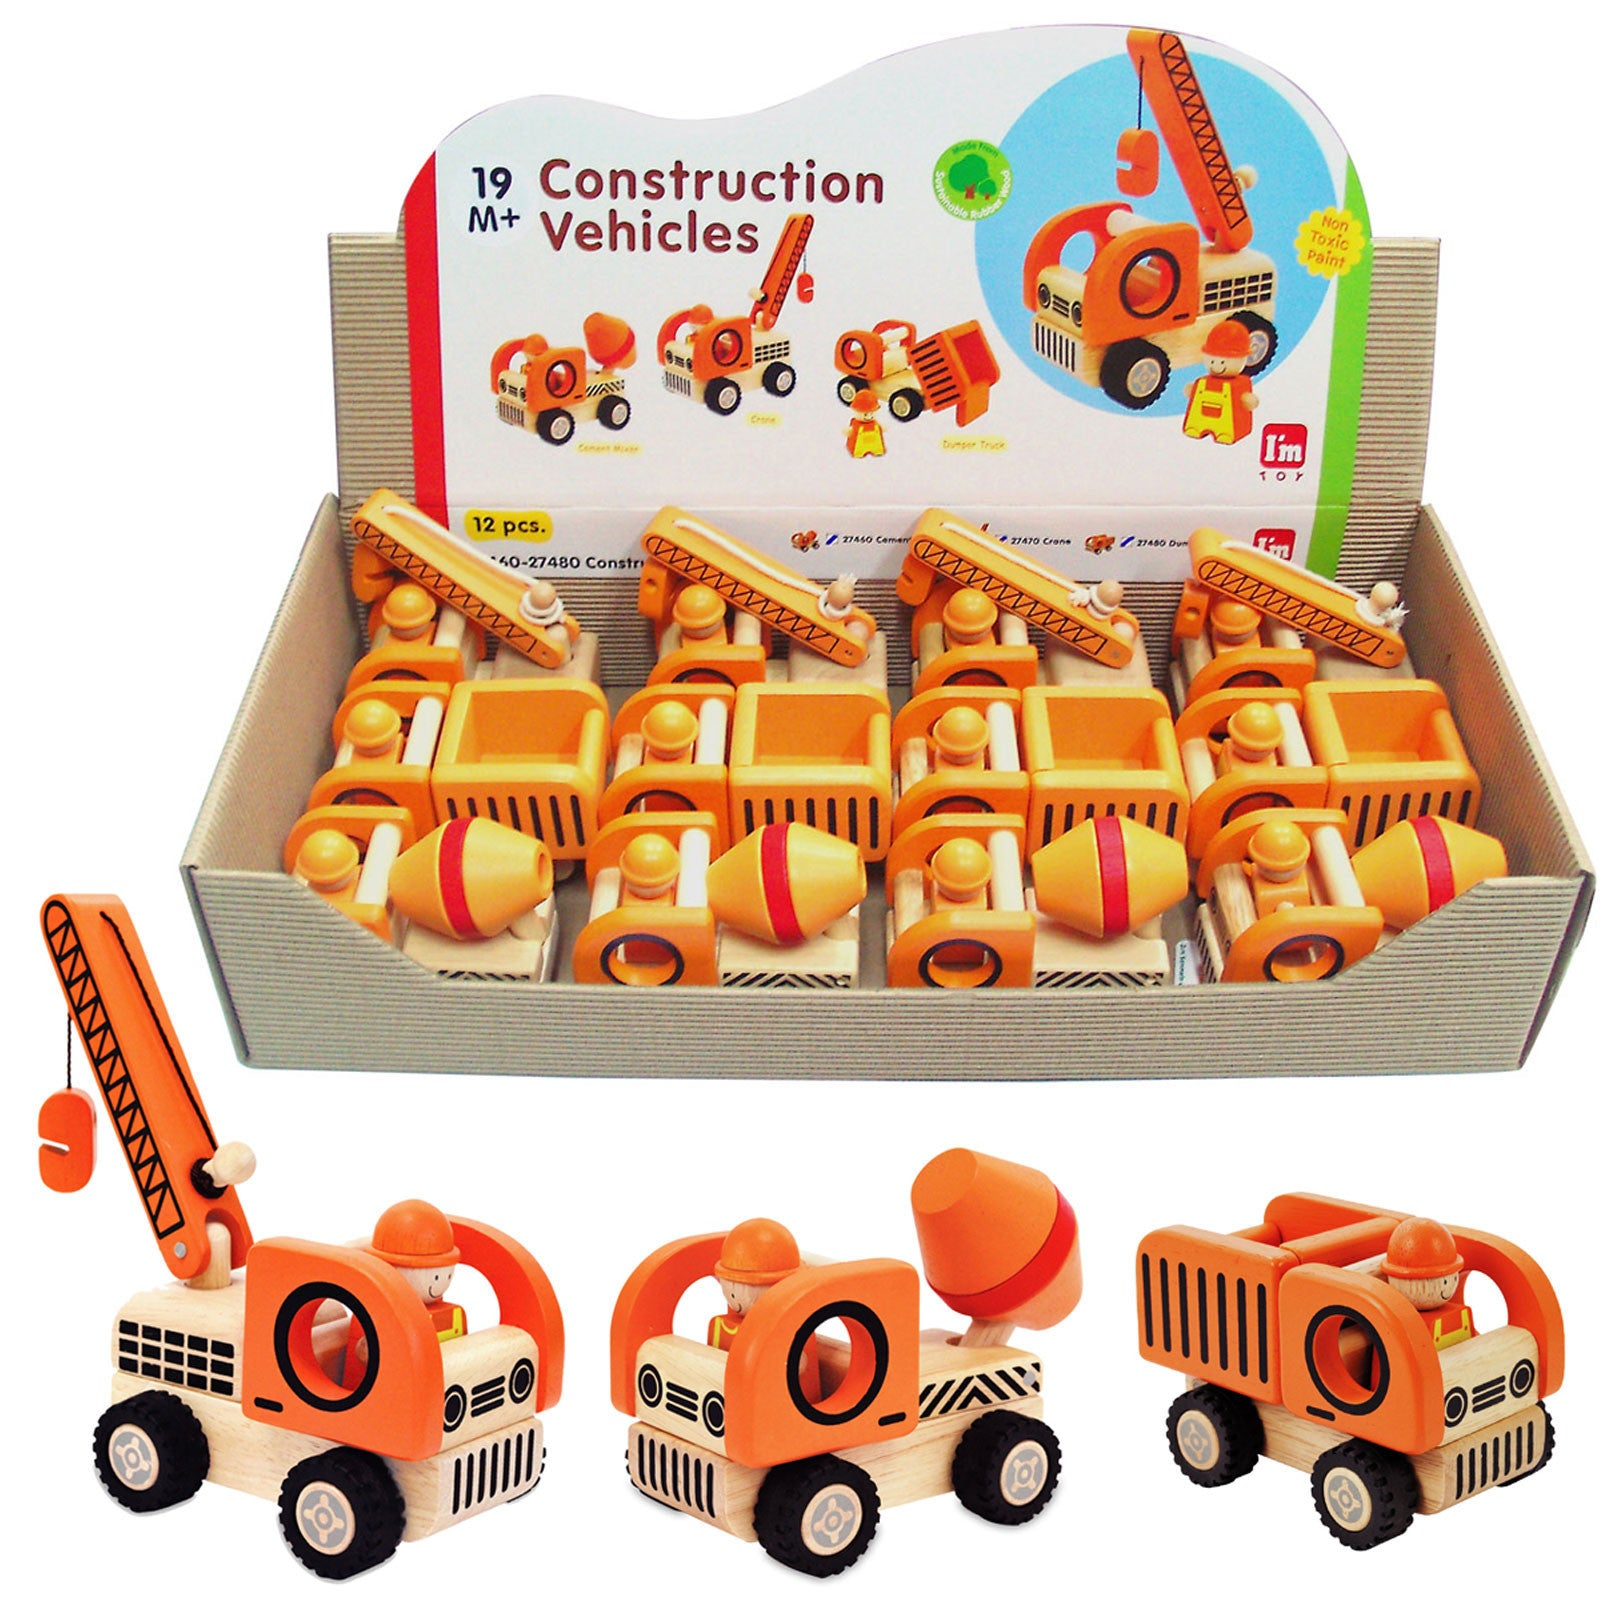 Construction Toys Product : Im toy wooden construction vehicles earth toys